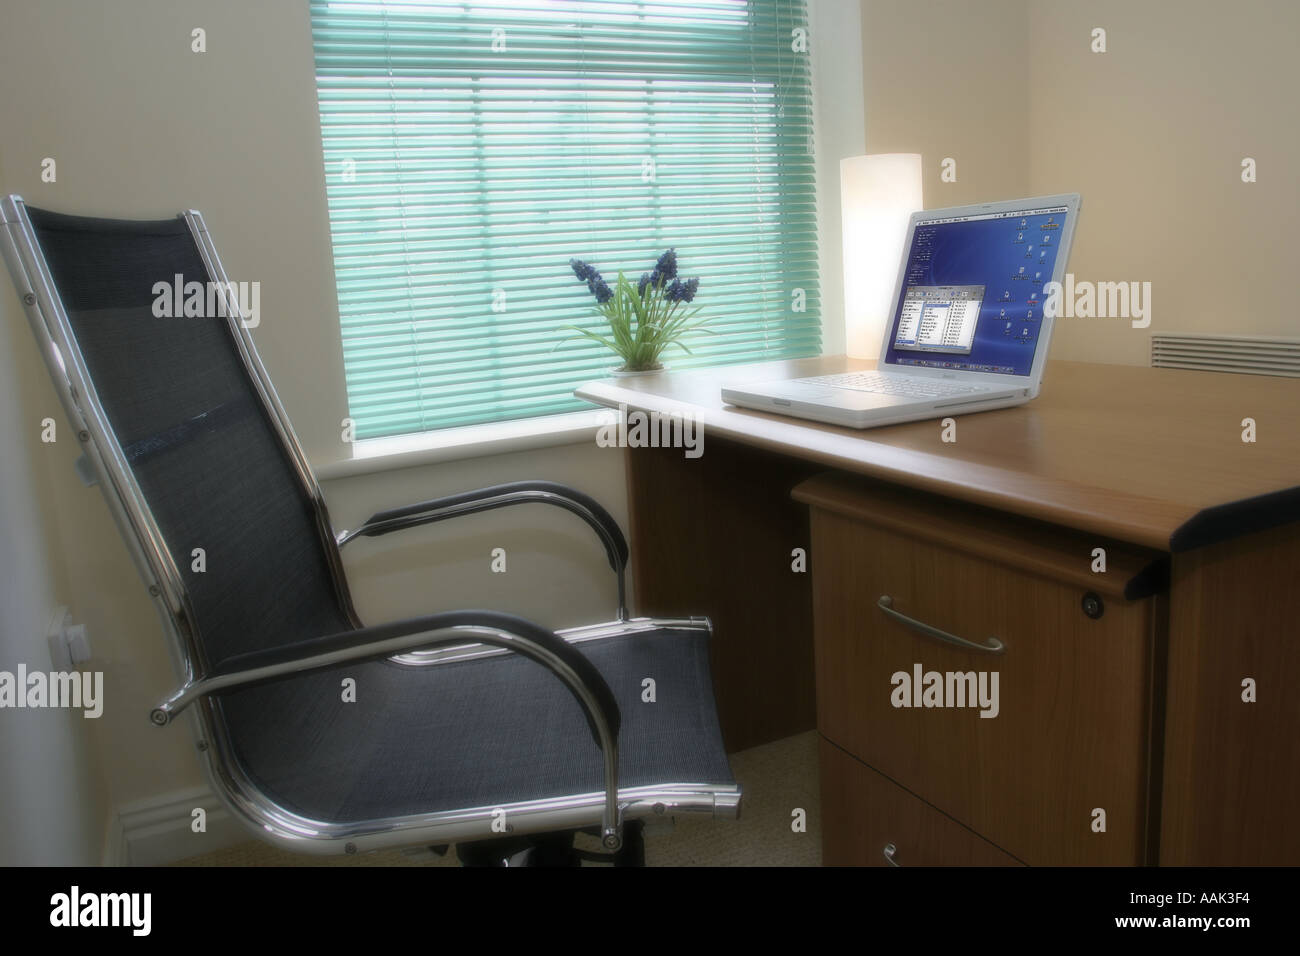 Apple Laptop Computer In Home Office Environment